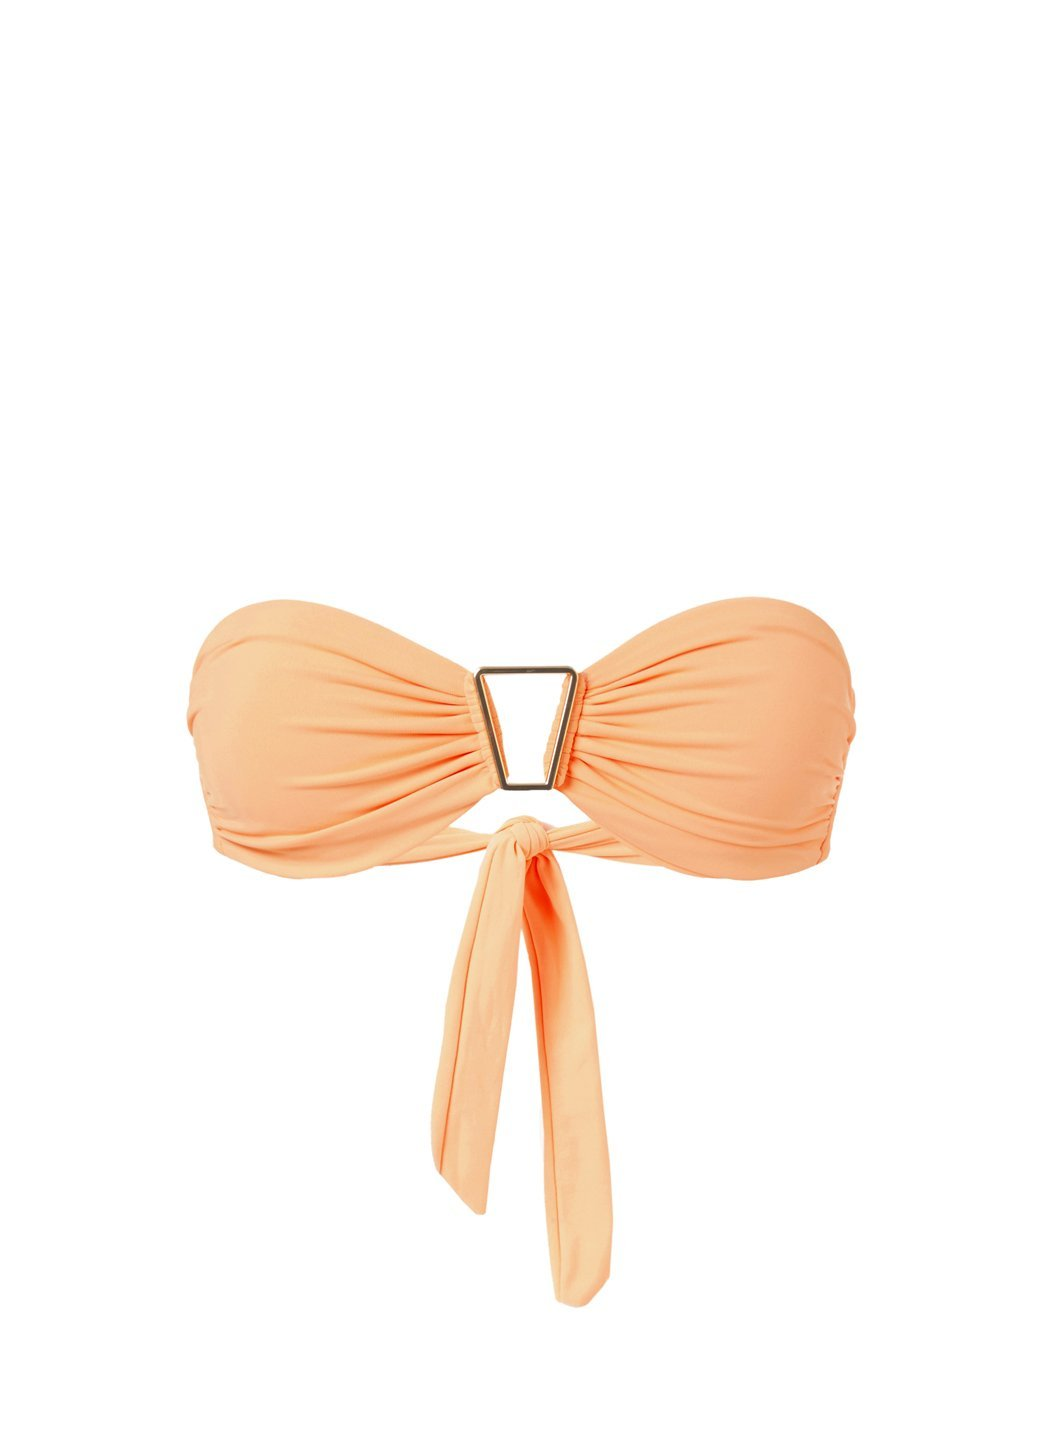 Barcelona Mango Bandeau Triangle Trim Bikini Top